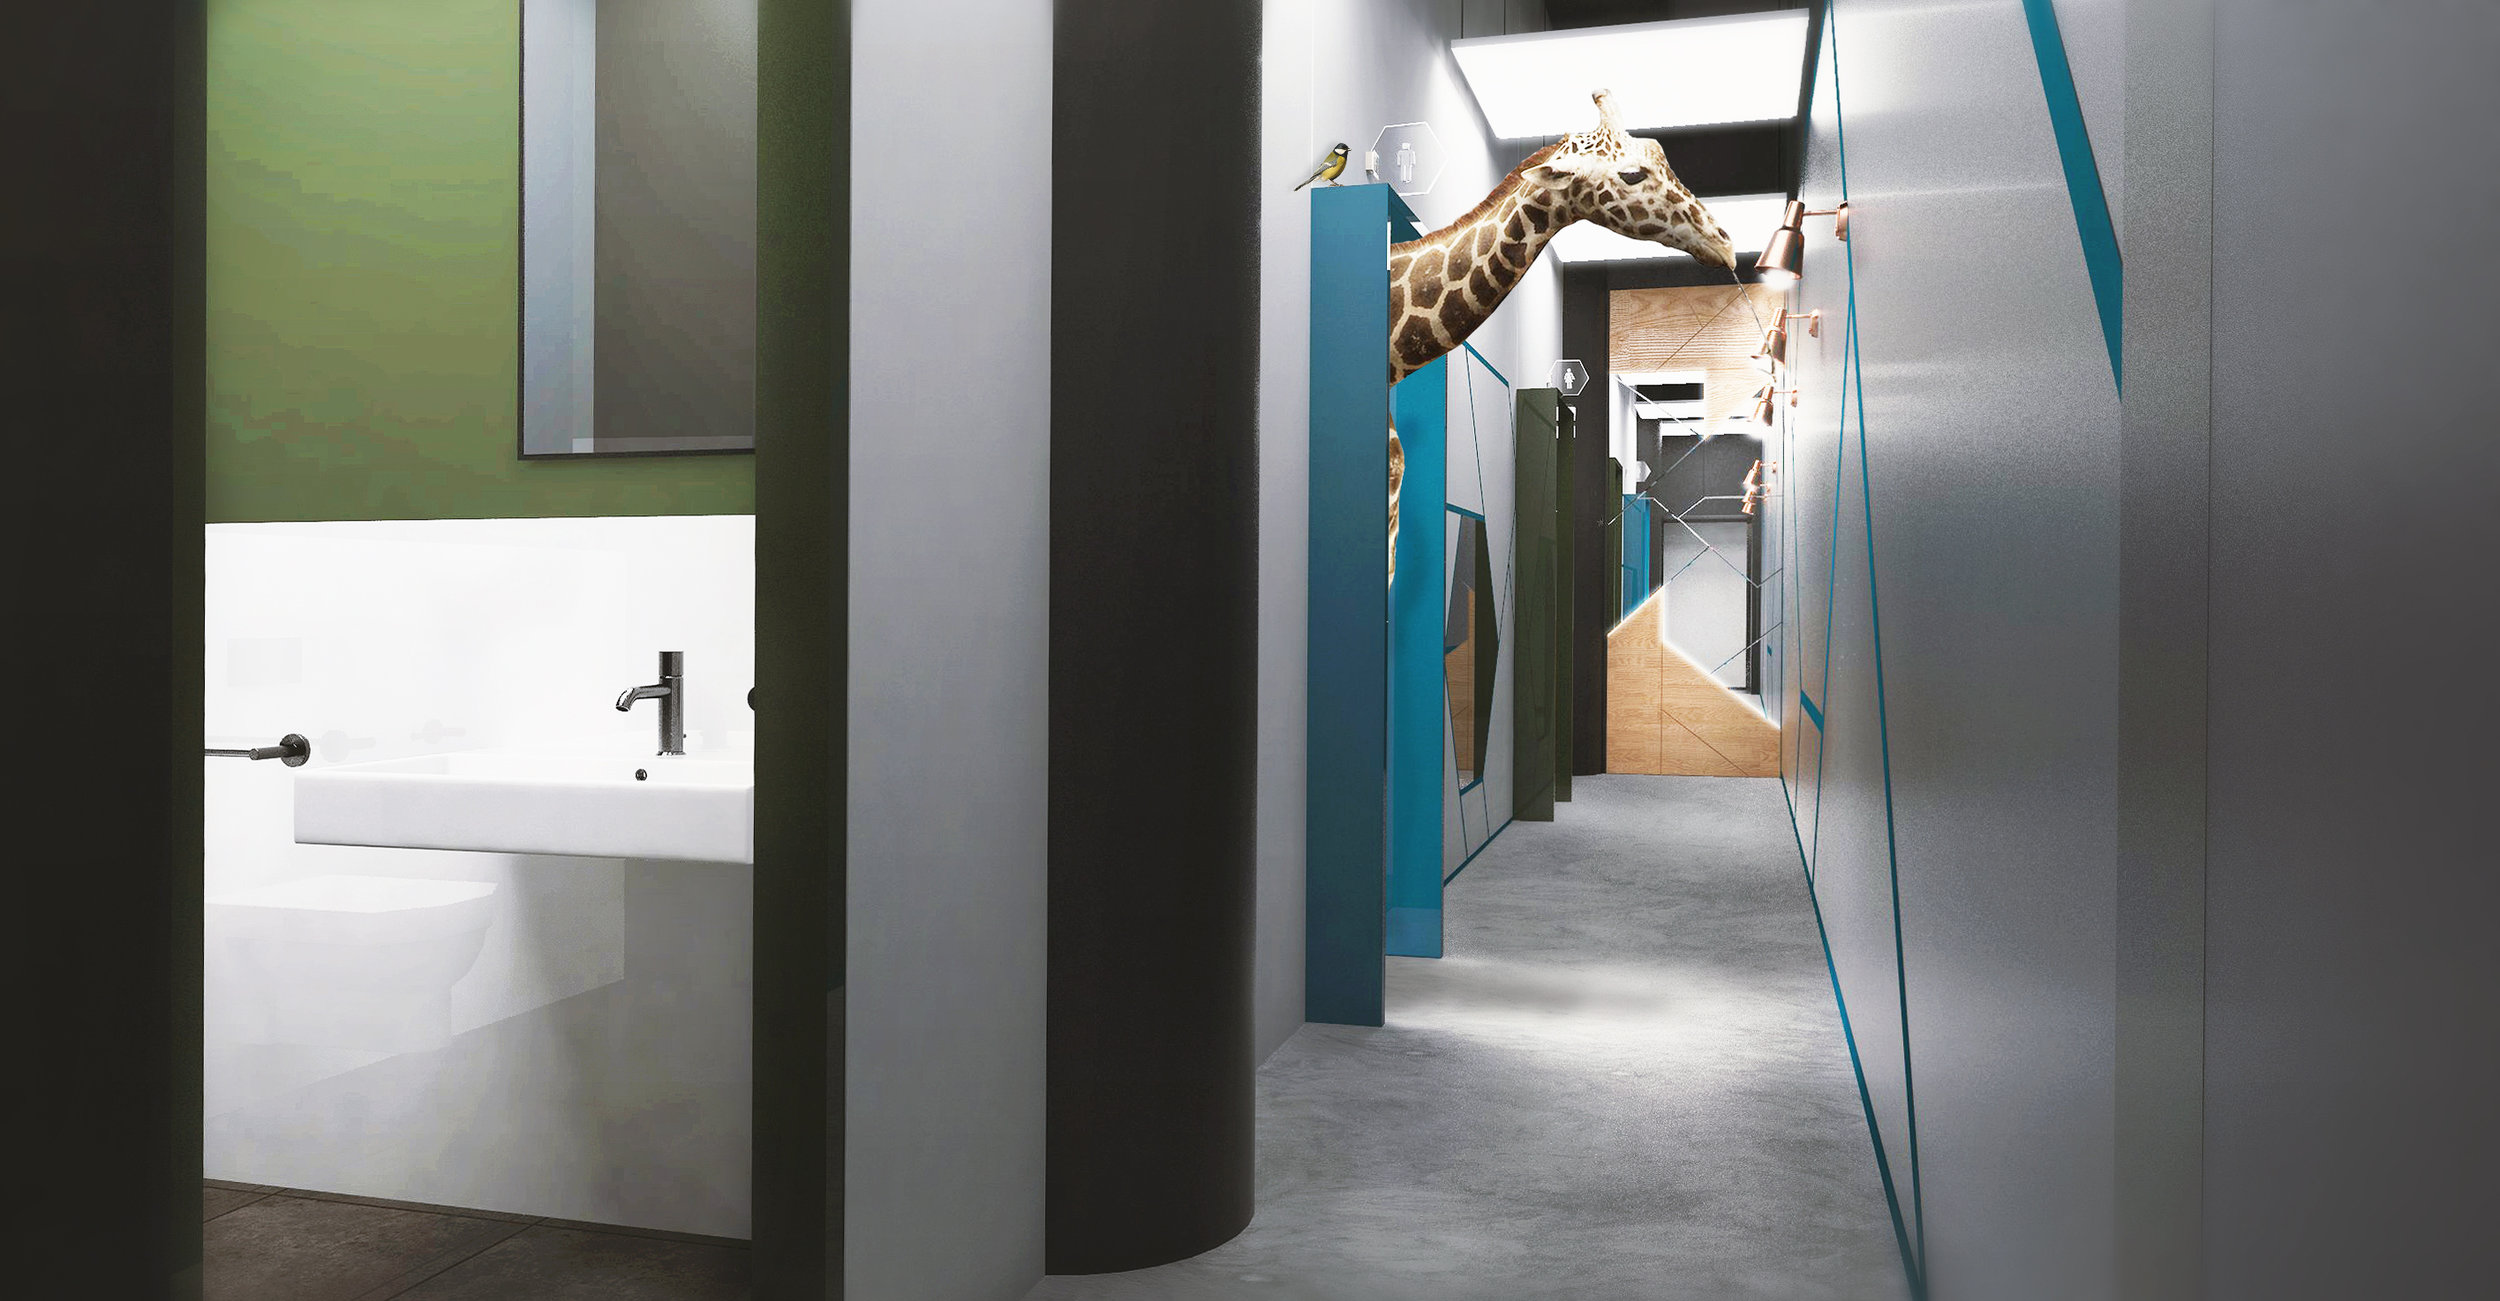 Bre_Office_urban zoo_2.jpg